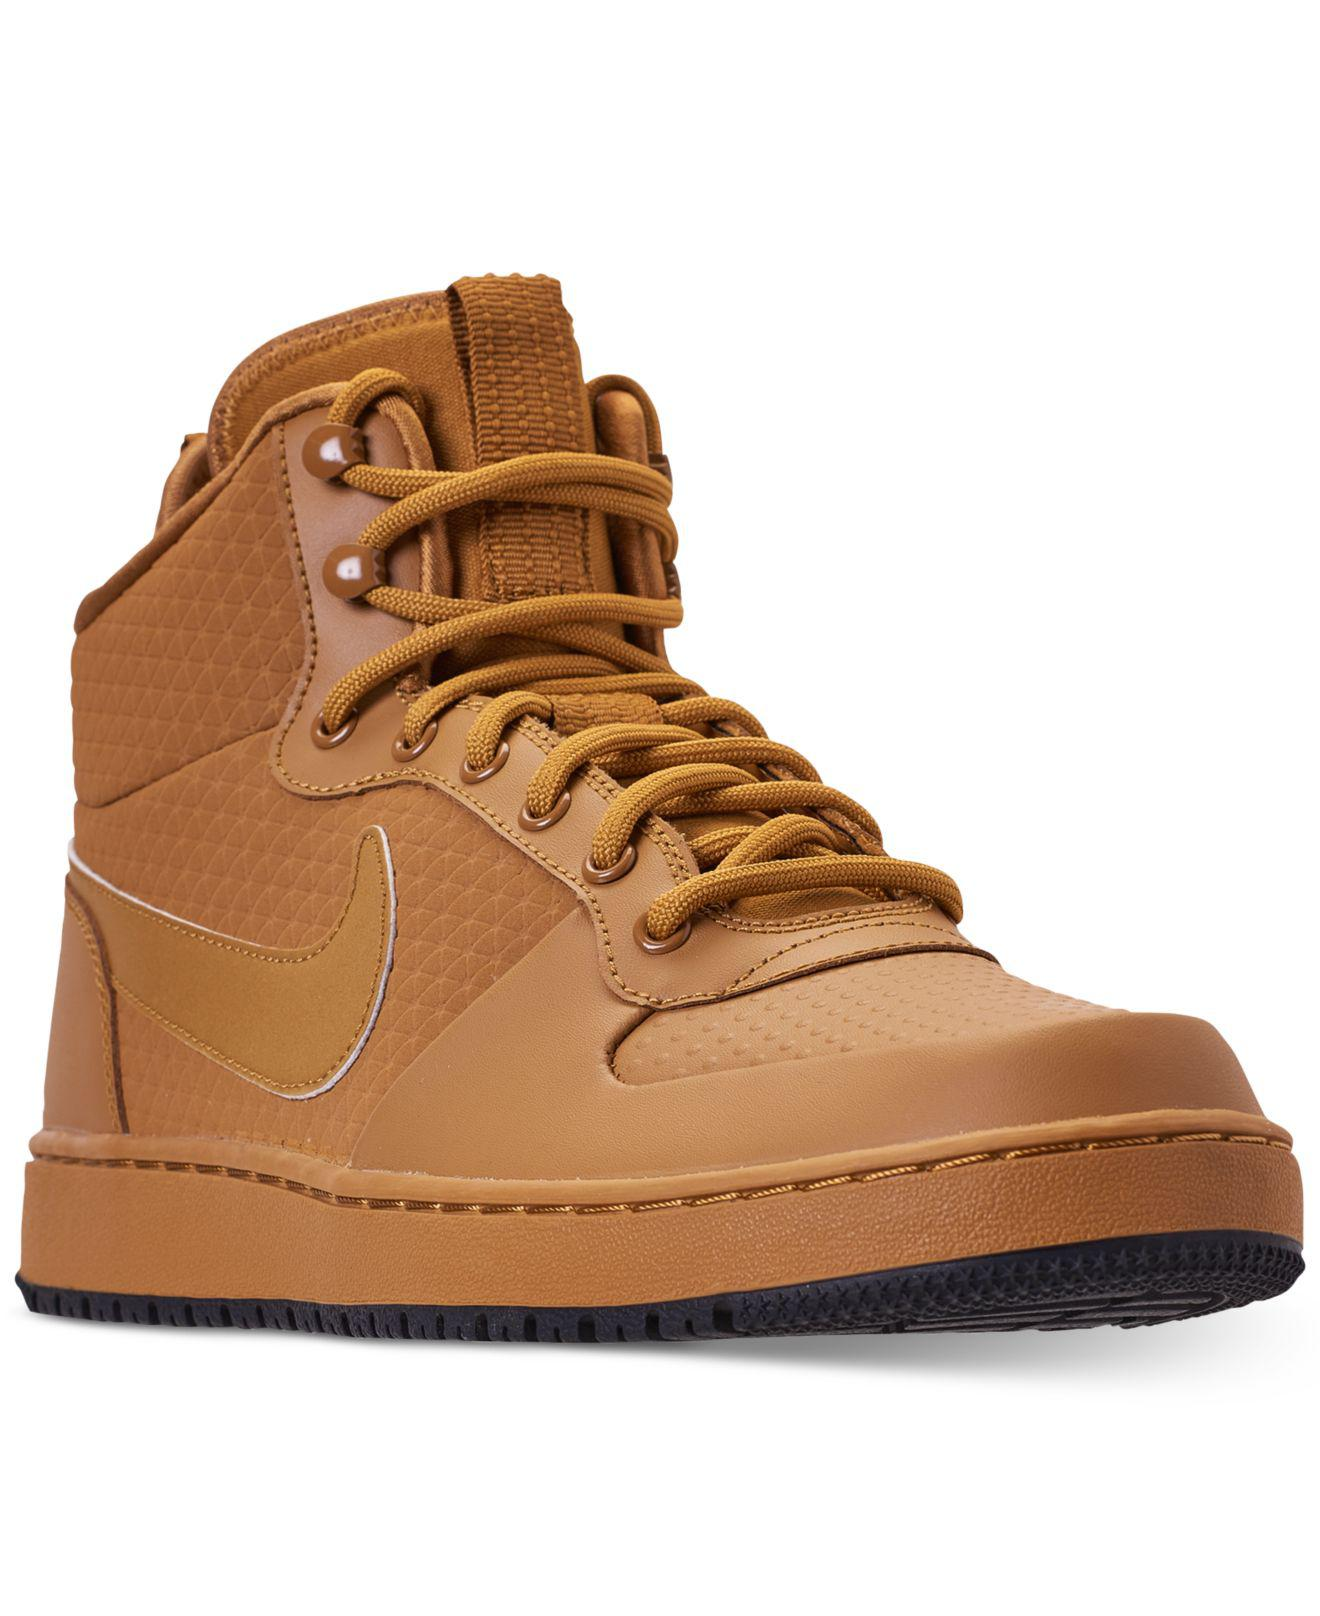 Lyst - Nike Ebernon Mid Winter Casual Sneakers From Finish Line in ... 398e727ae